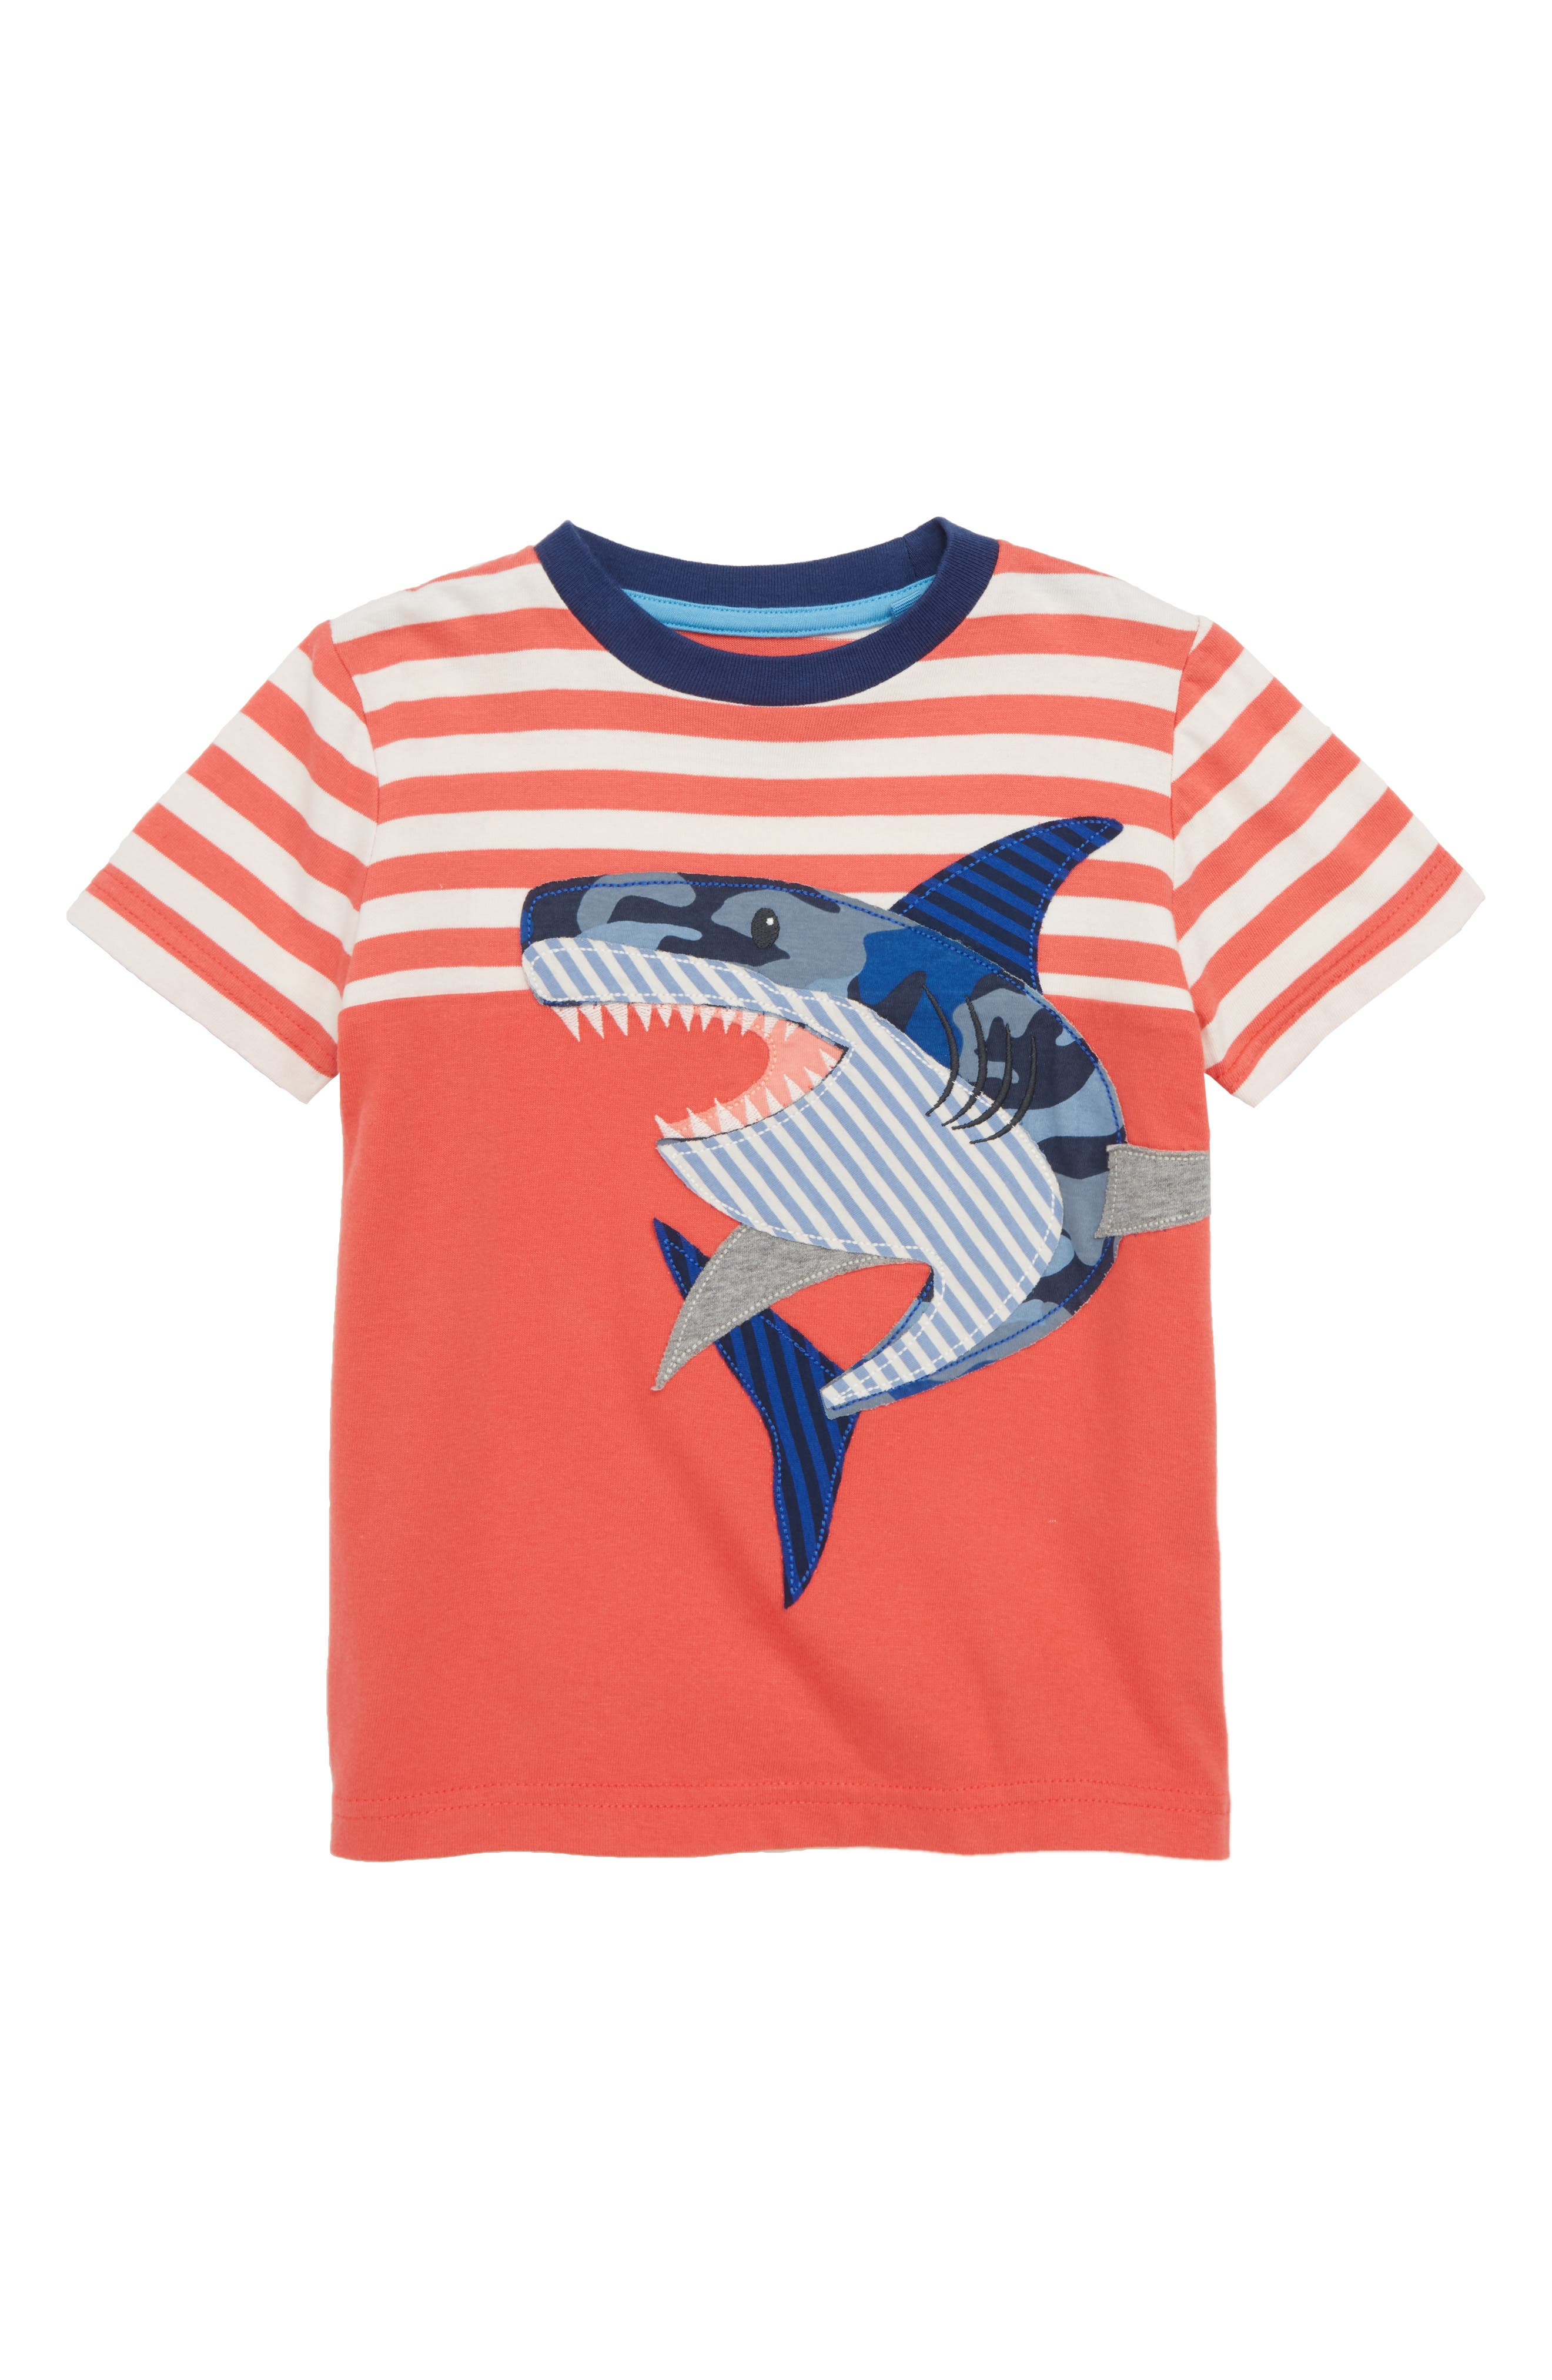 Shark Appliqué T-Shirt,                             Main thumbnail 1, color,                             Jam Red/ Ecru Shark